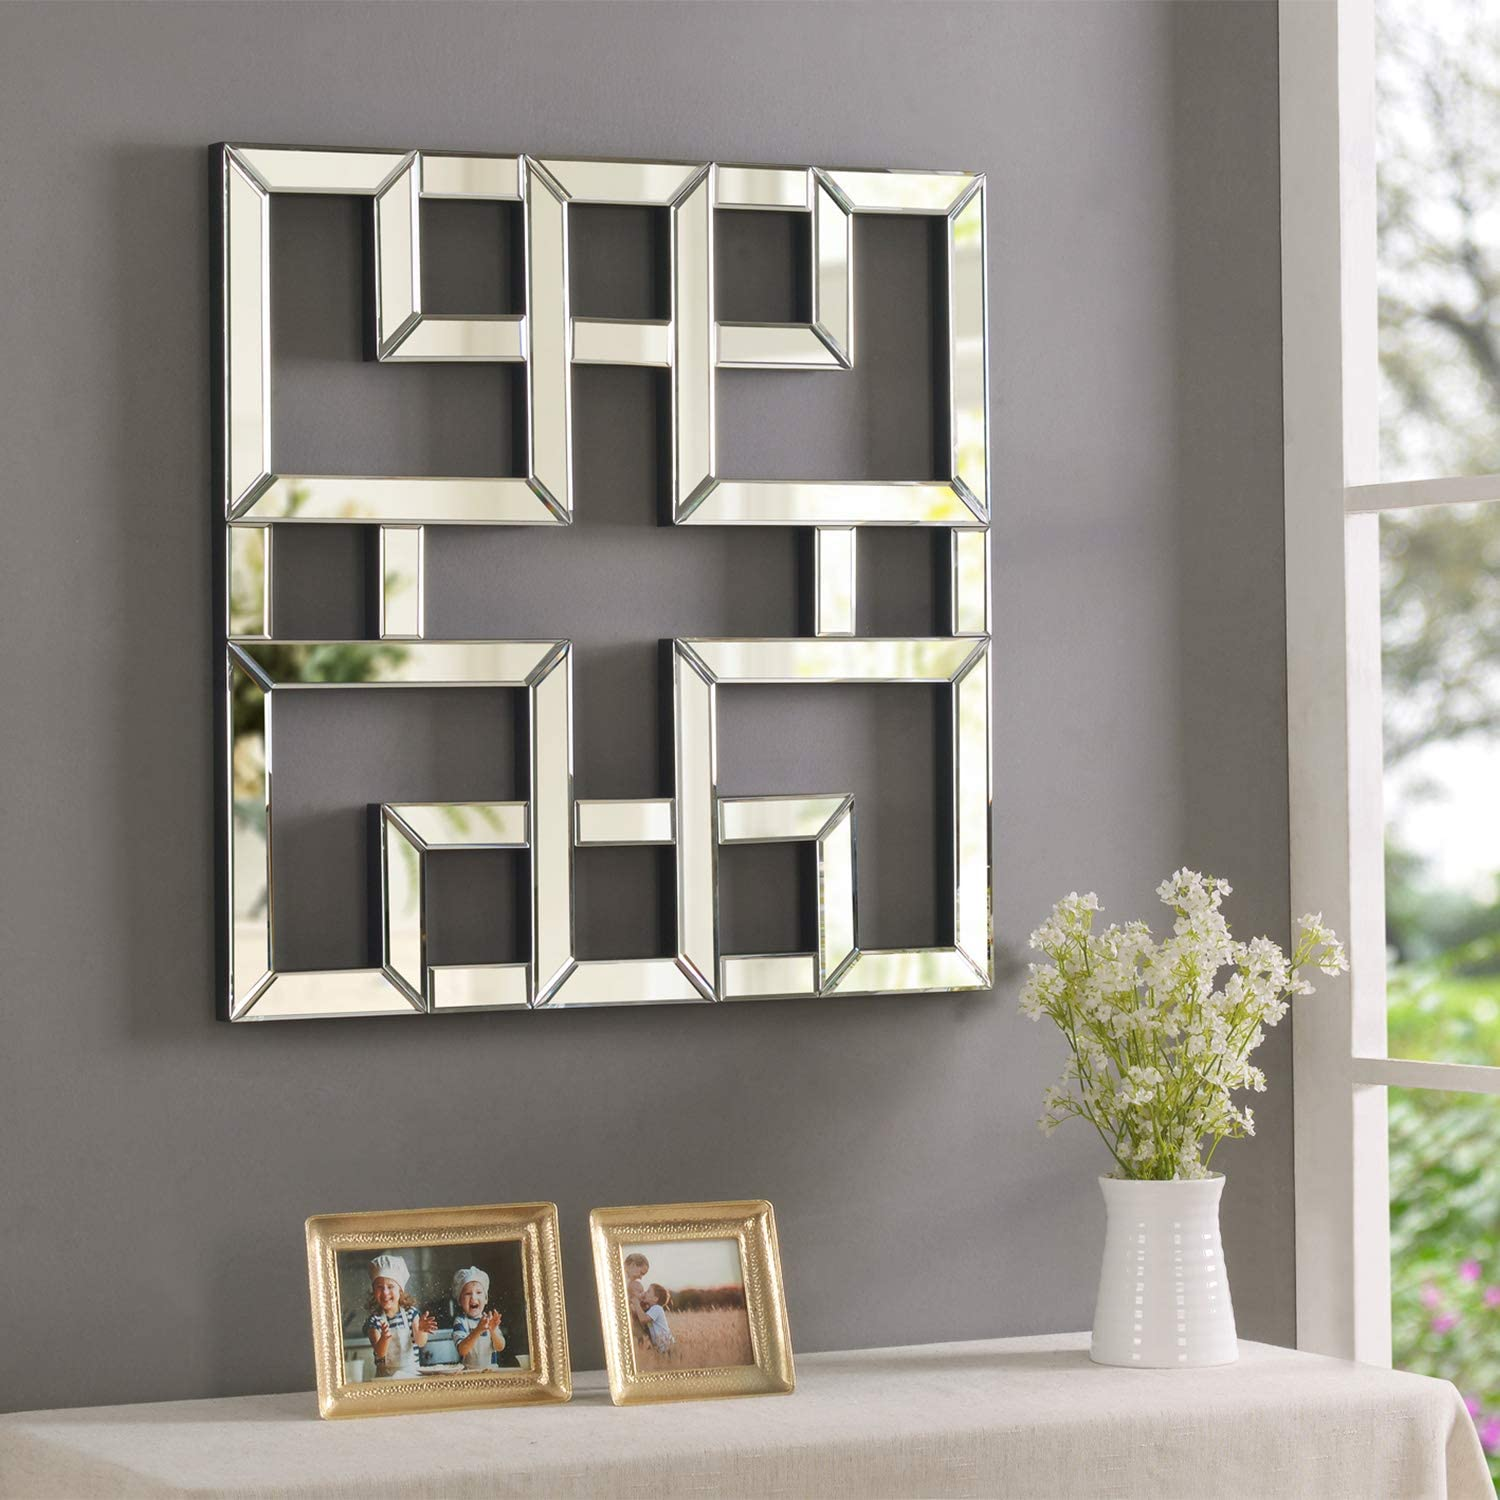 MOTINI Accent Wall Mirror Wall Art Decor Geometric Art Wall Mounted Mirrors for Wall Abstract Artwork Square Mirror for Foyer, Living Room, Entryway, Hallway Home Decor, 25